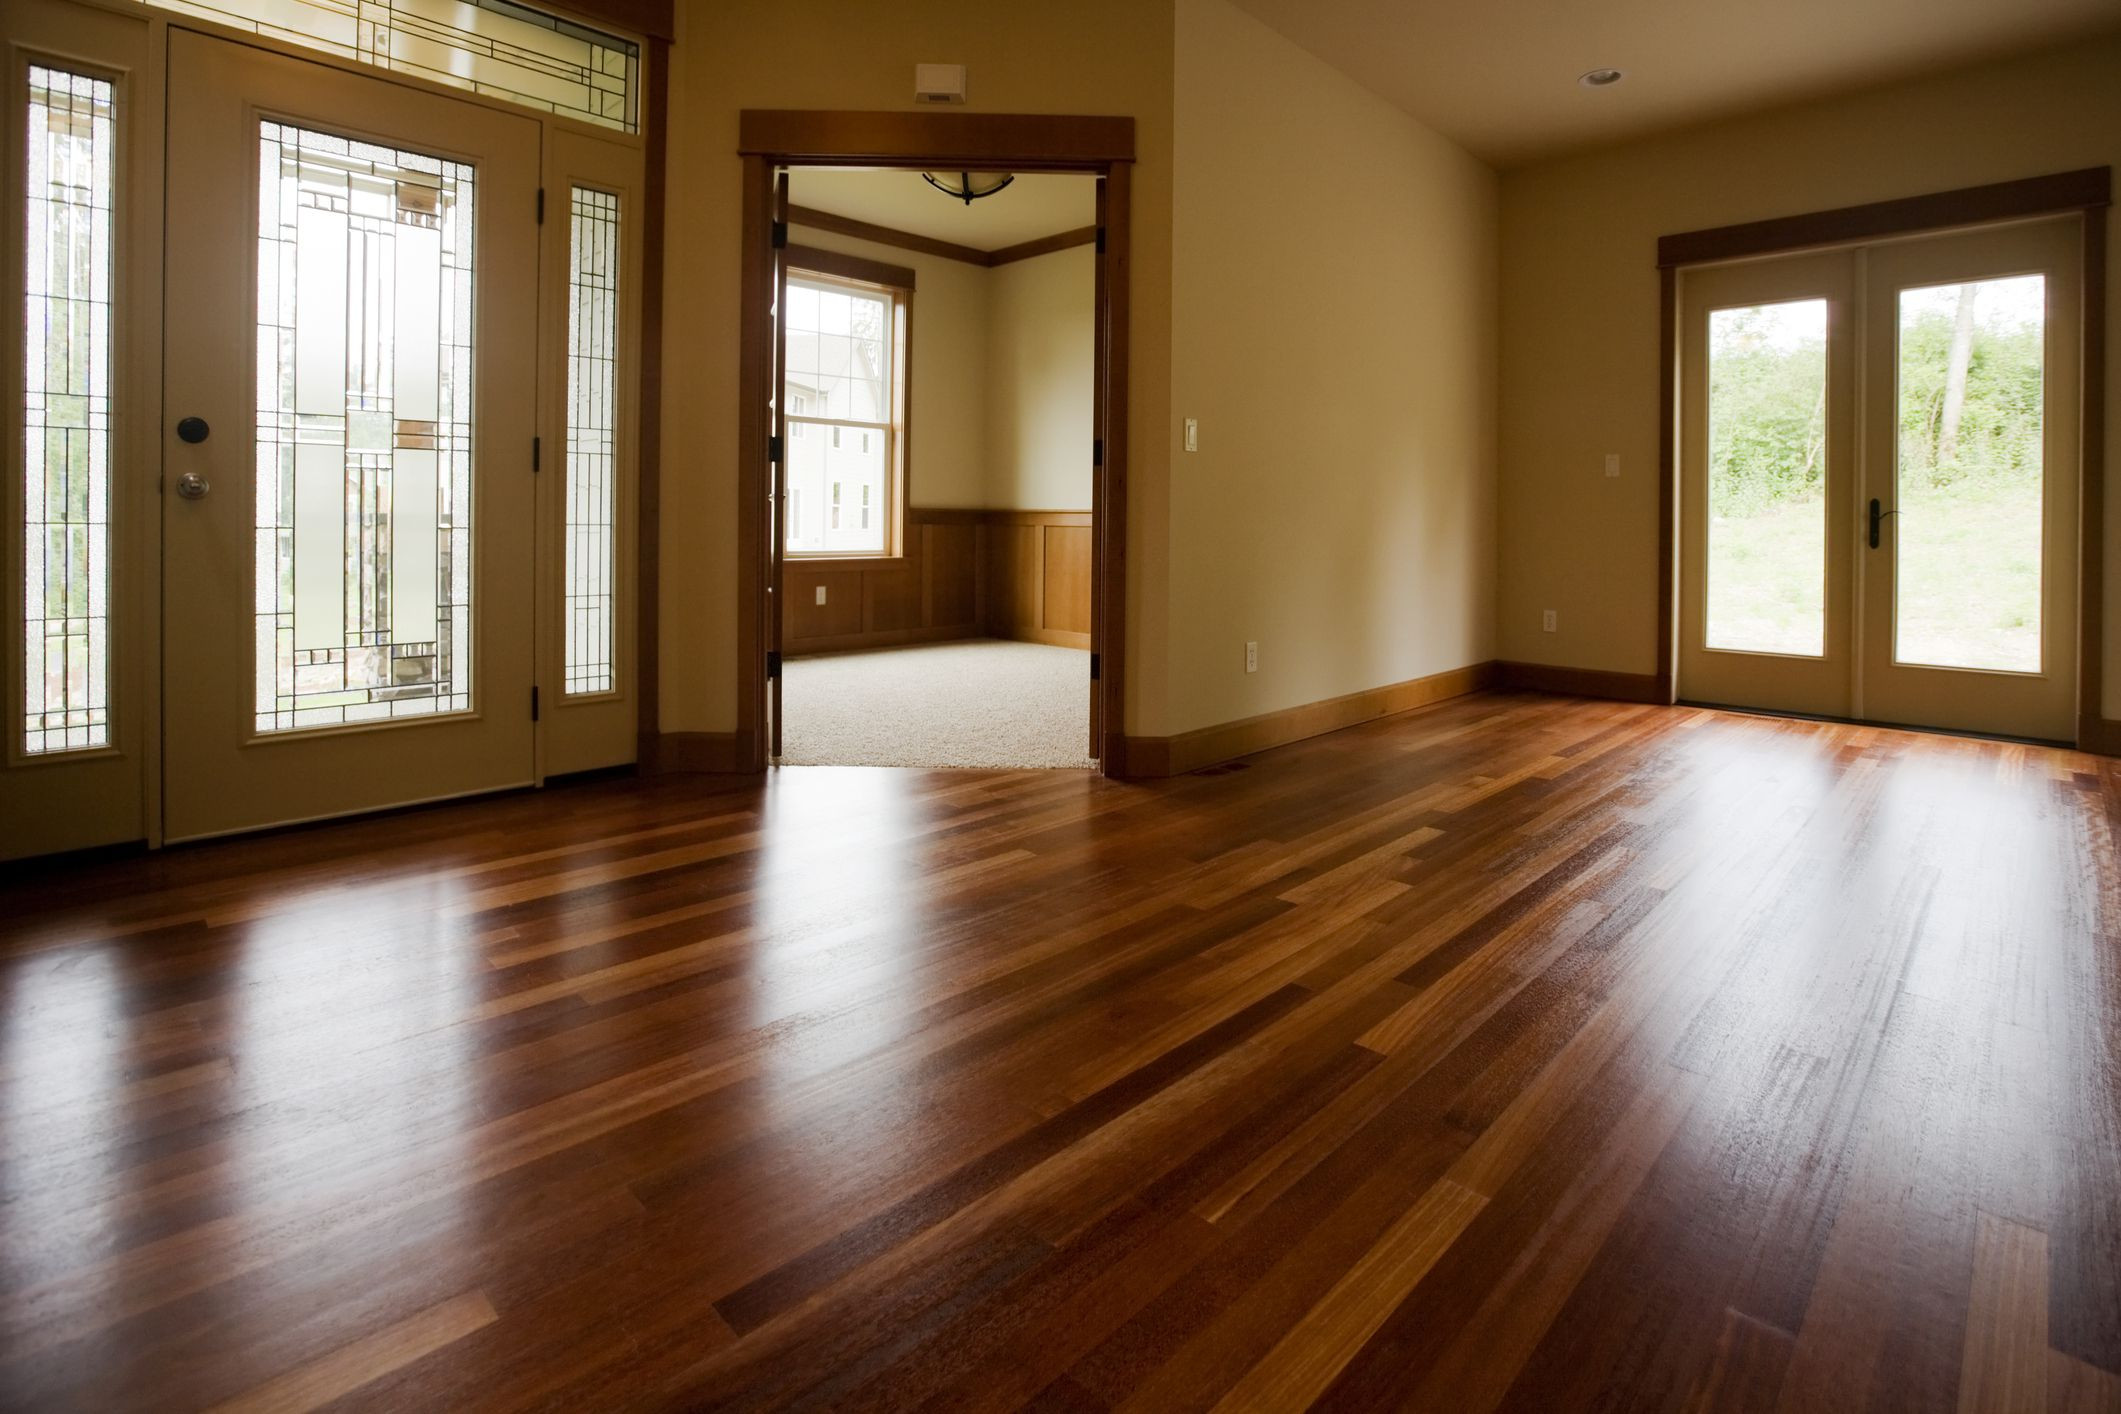 elm hardwood flooring hardness of types of hardwood flooring buyers guide inside gettyimages 157332889 5886d8383df78c2ccd65d4e1